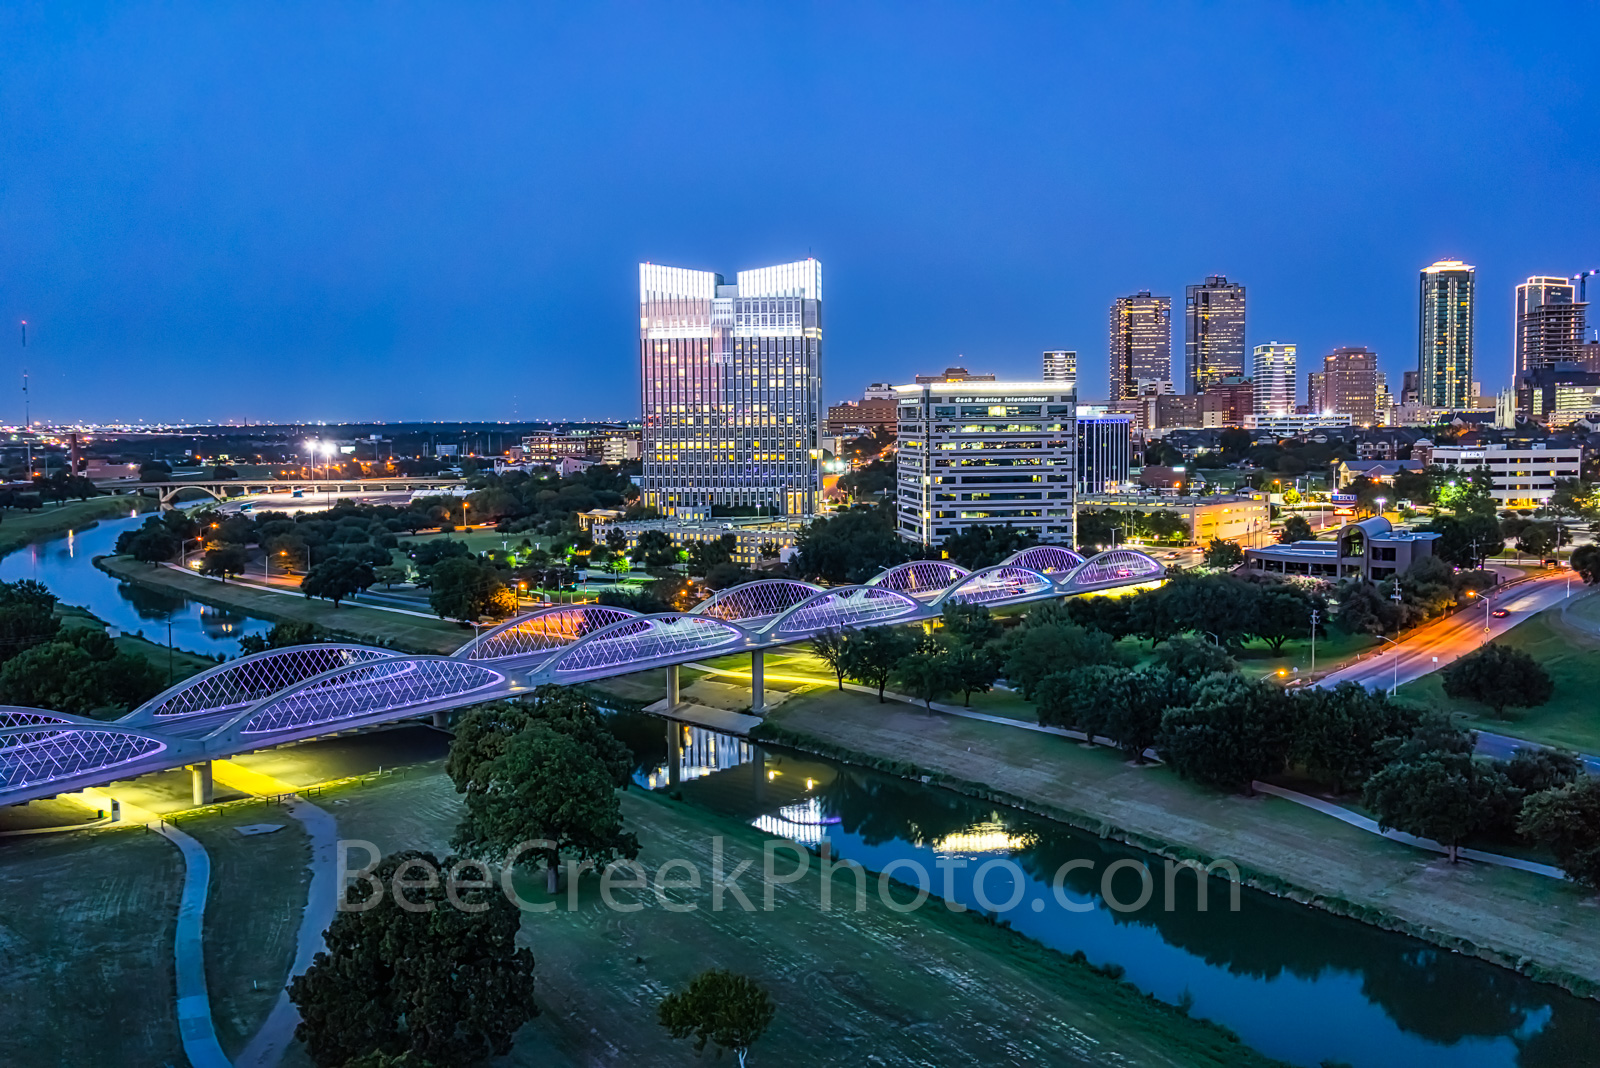 Fort Worth Skyline, twilight, blue hour, Fort Worth, Ft Worth, skyline, skylines, cityscape, cityscapes, downtown, seventh street bridge, 7th street, Trinity river, panorama, pano, Tarrant county,  DF, photo